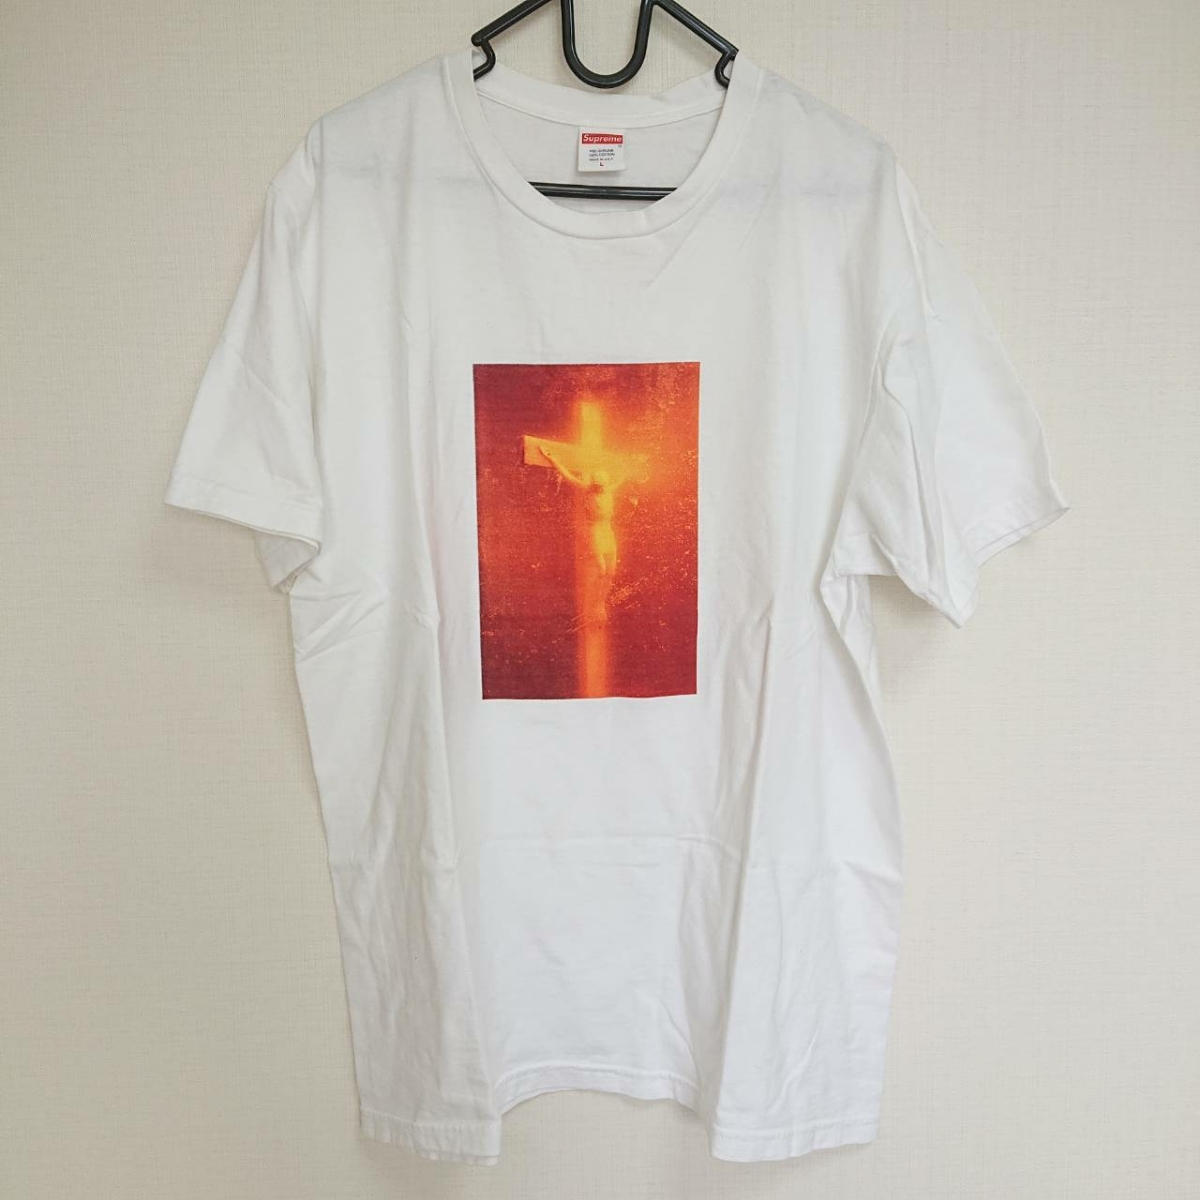 SUPREME シュプリーム 17AW Piss Christ Tee Tシャツ 白 Size【L】used